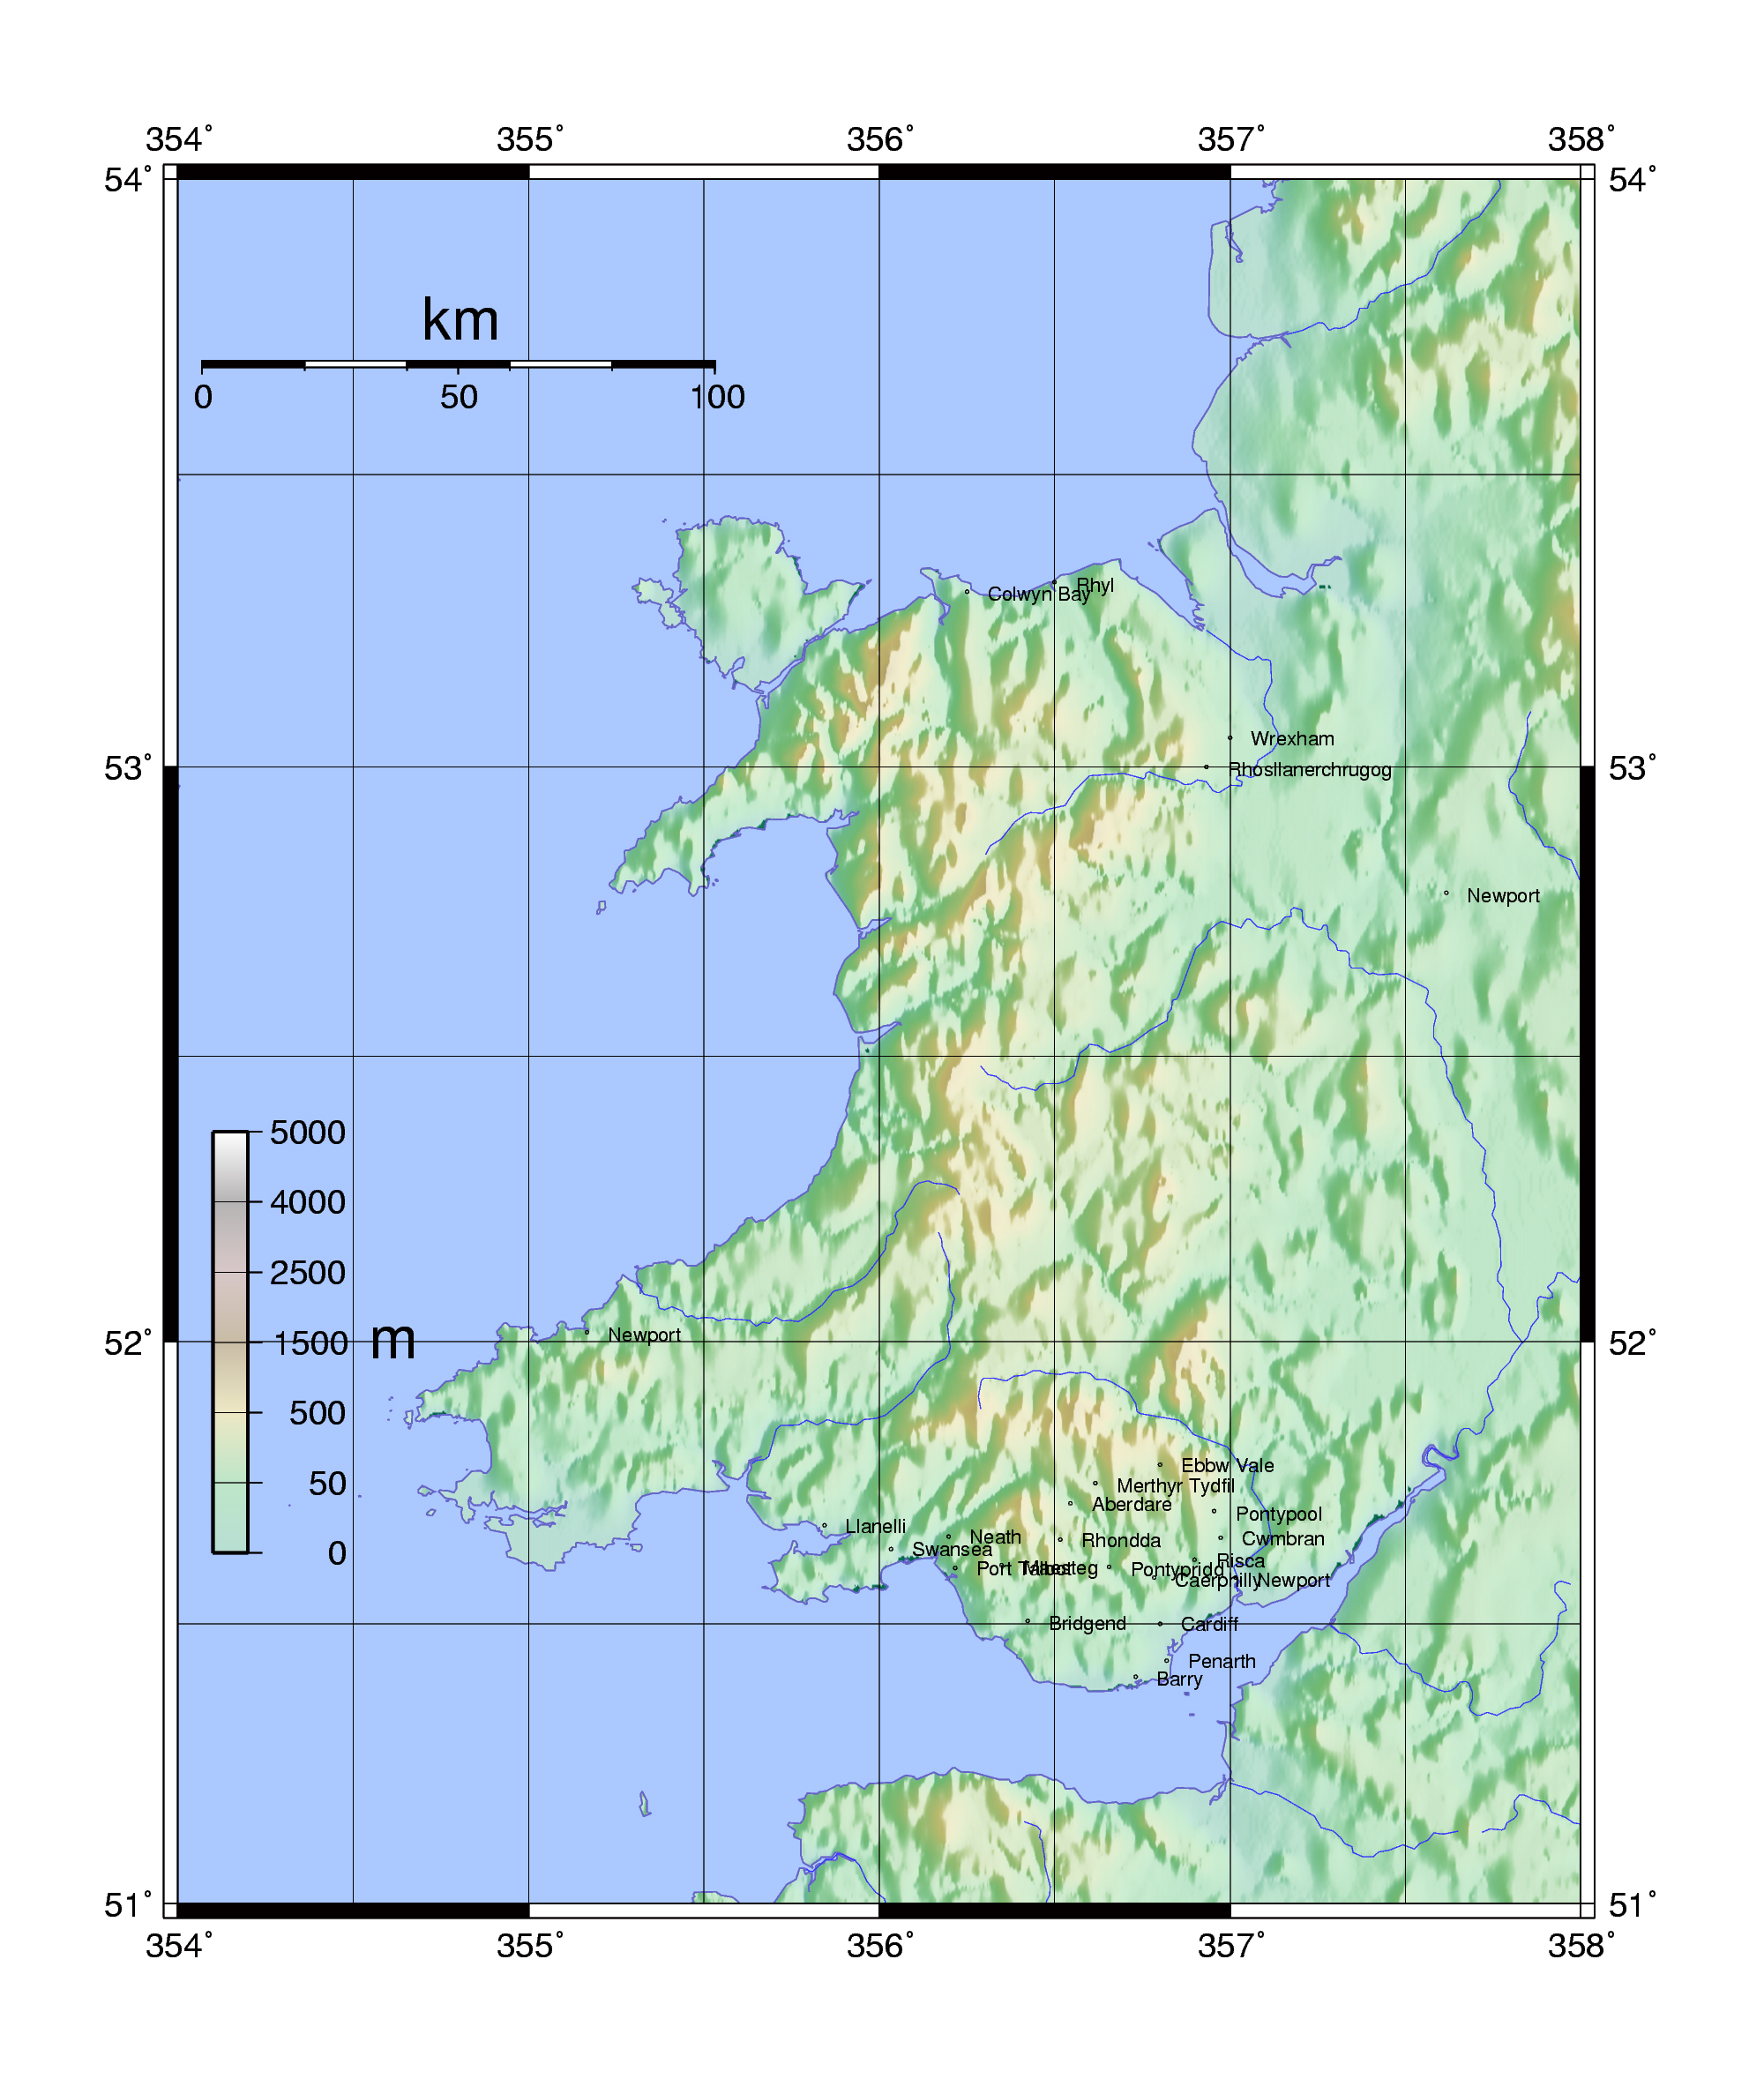 Large topographical map of Wales Wales United Kingdom Europe